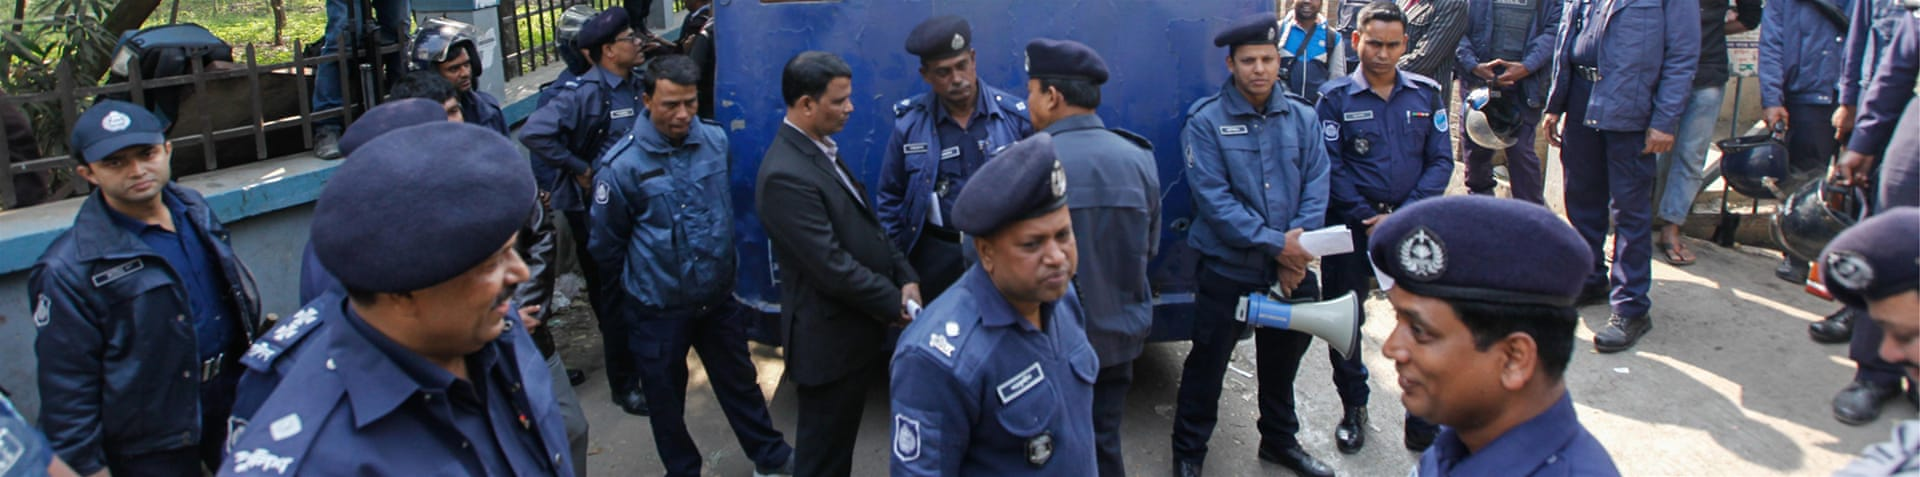 Nur Hossain has been accused of paying paramilitary men to kill a political and business rival, Nazrul Islam in April 2014 [Mahmud Hossain Opu/Al Jazeera] [Al Jazeera]